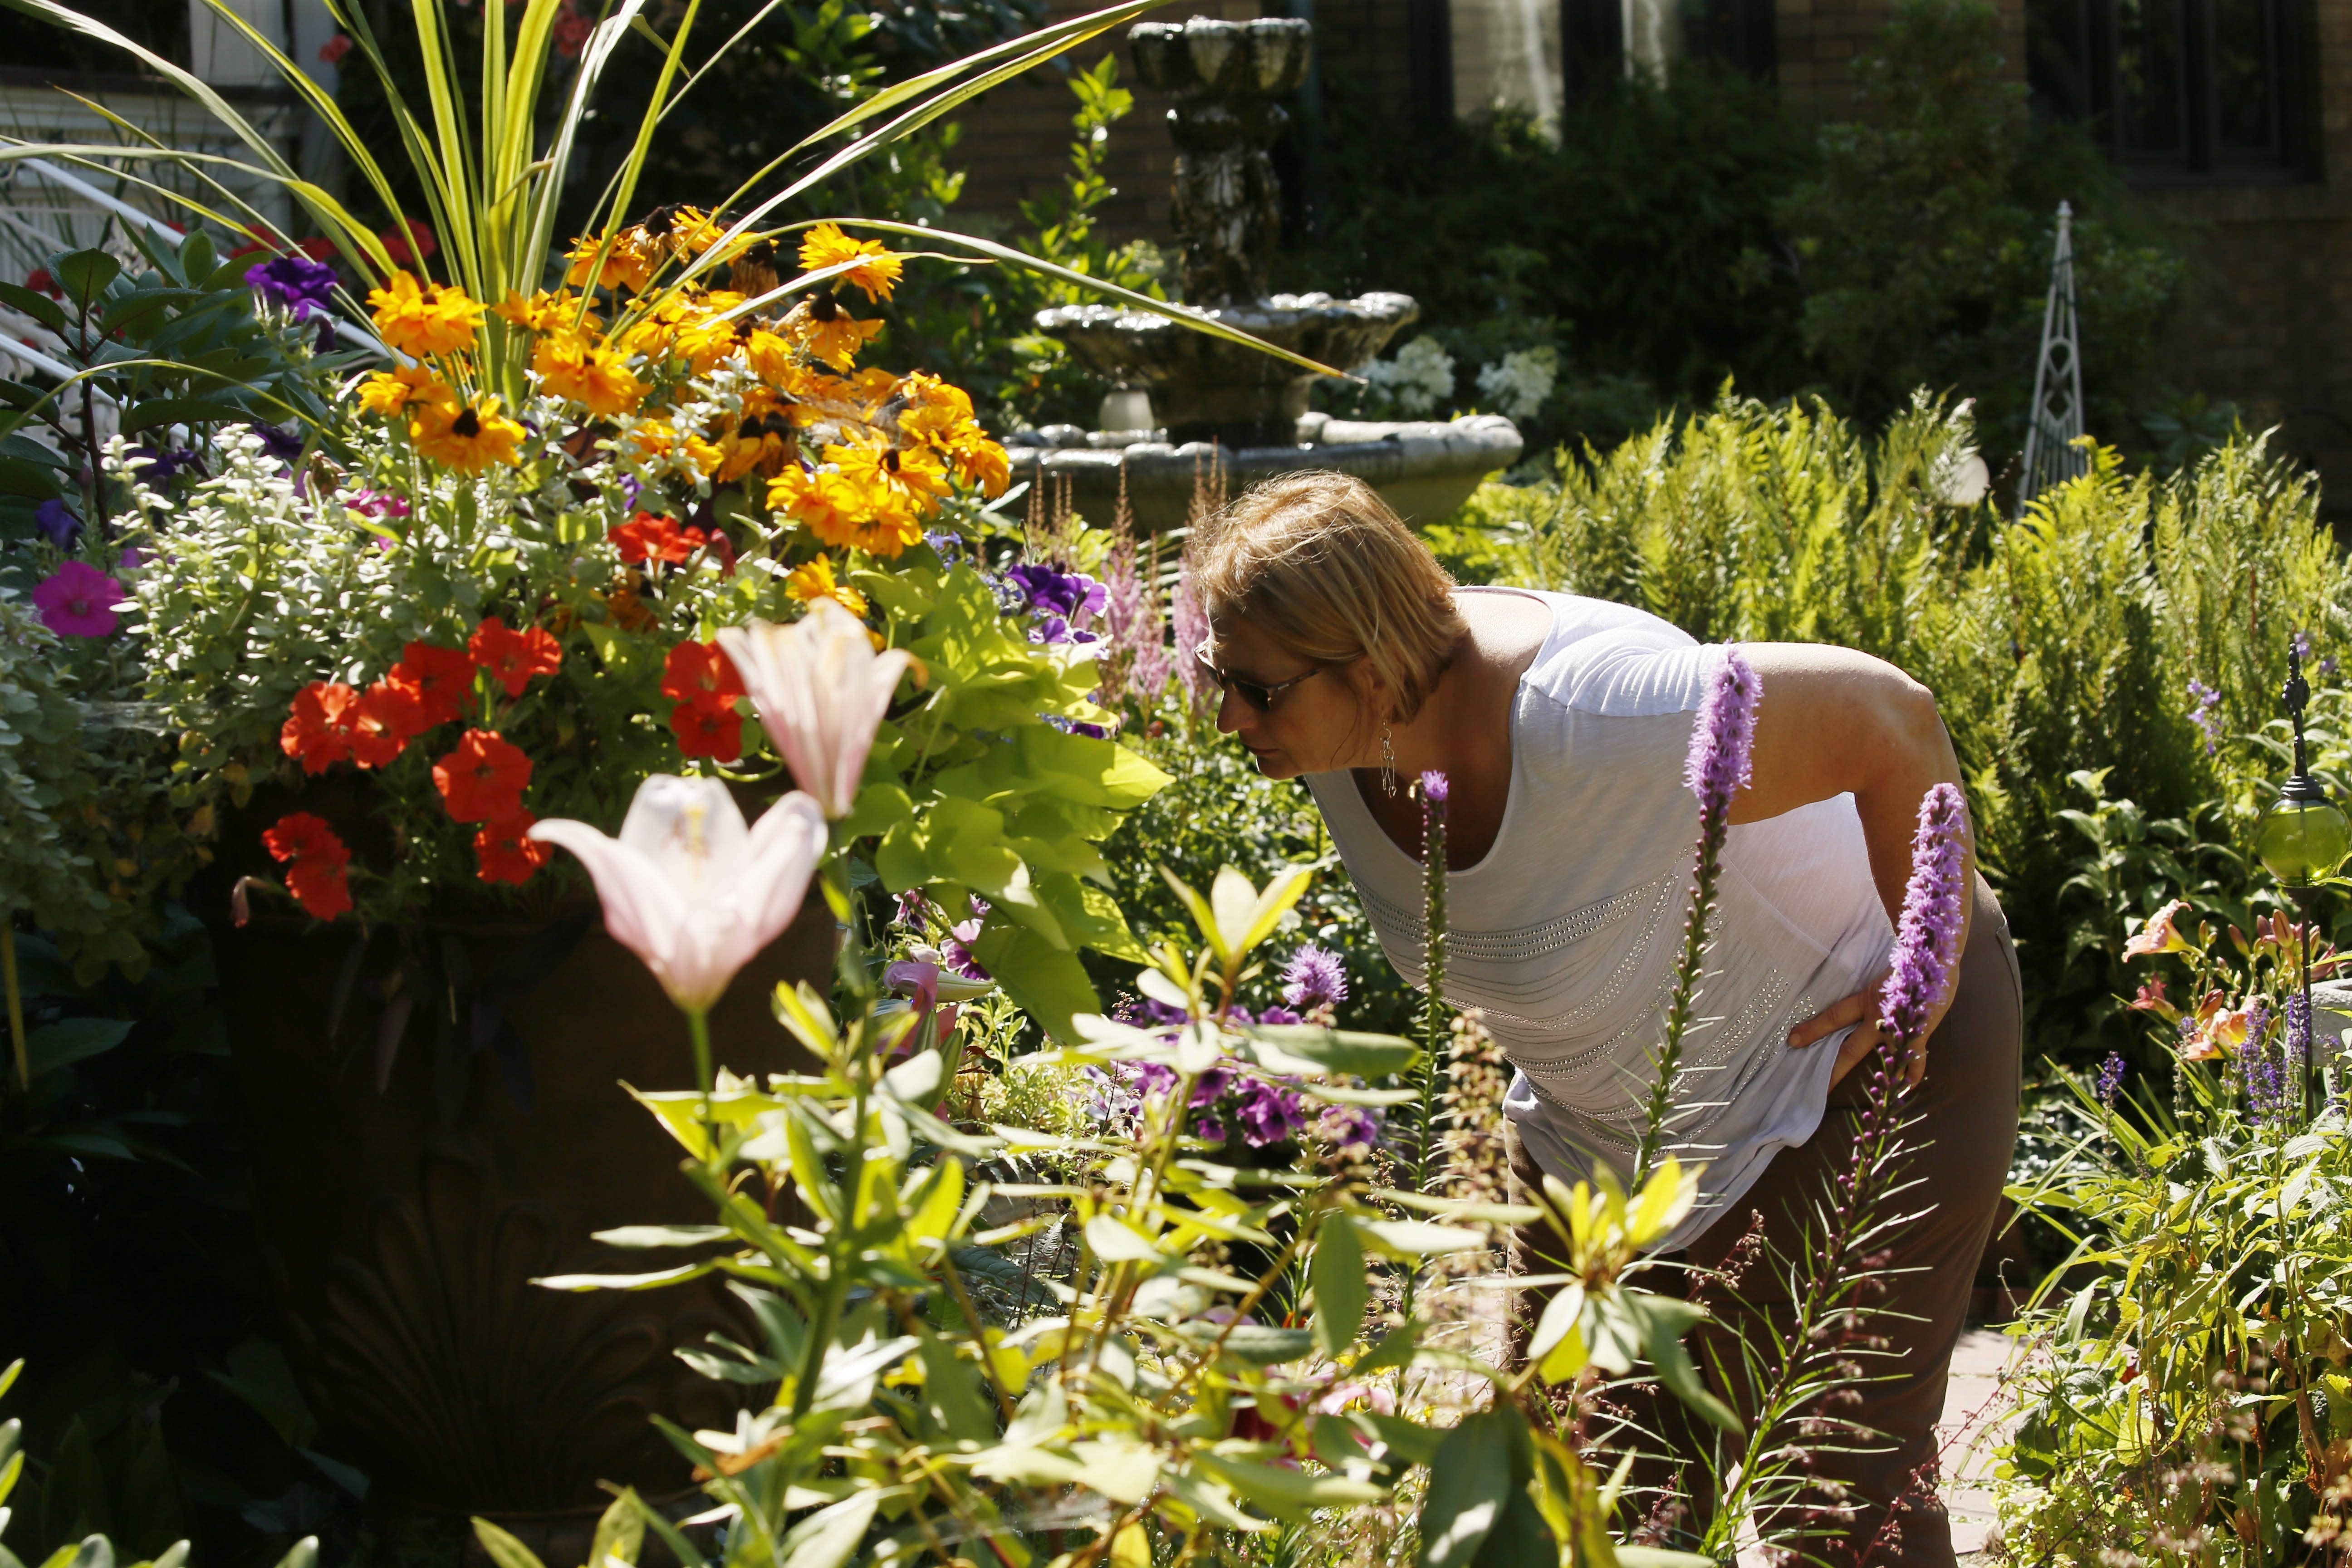 Donna Kleinmann of Hamburg pauses to catch a scent and get a closer look at the beautiful blooms in Jennifer and Jim Guercio's garden on West Delavan Avenue. The walk features seven areas and neighborhoods that visitors may stroll through.